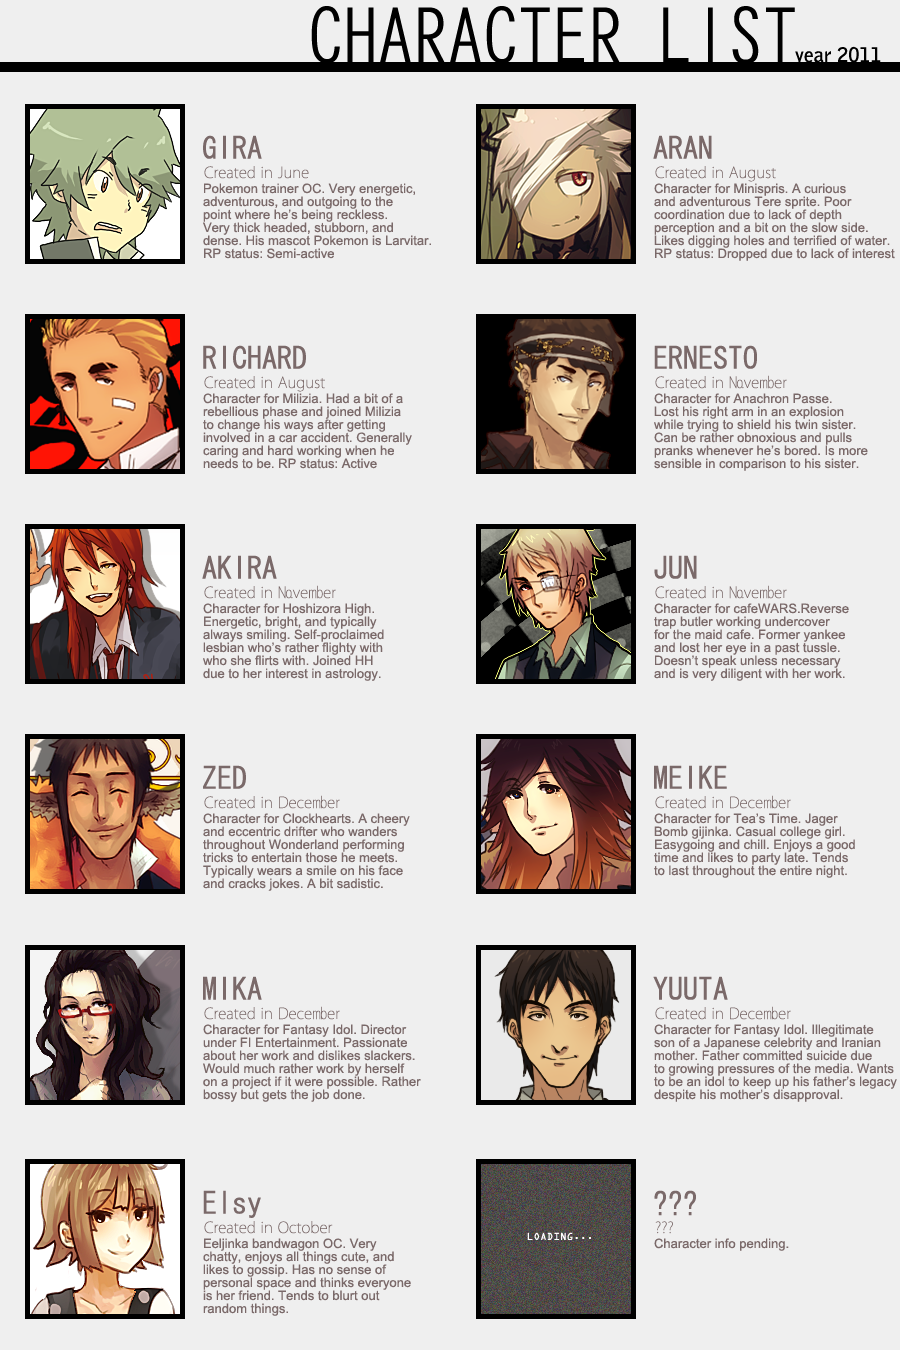 Meme Character List By Darkywarky Lovely Horribly